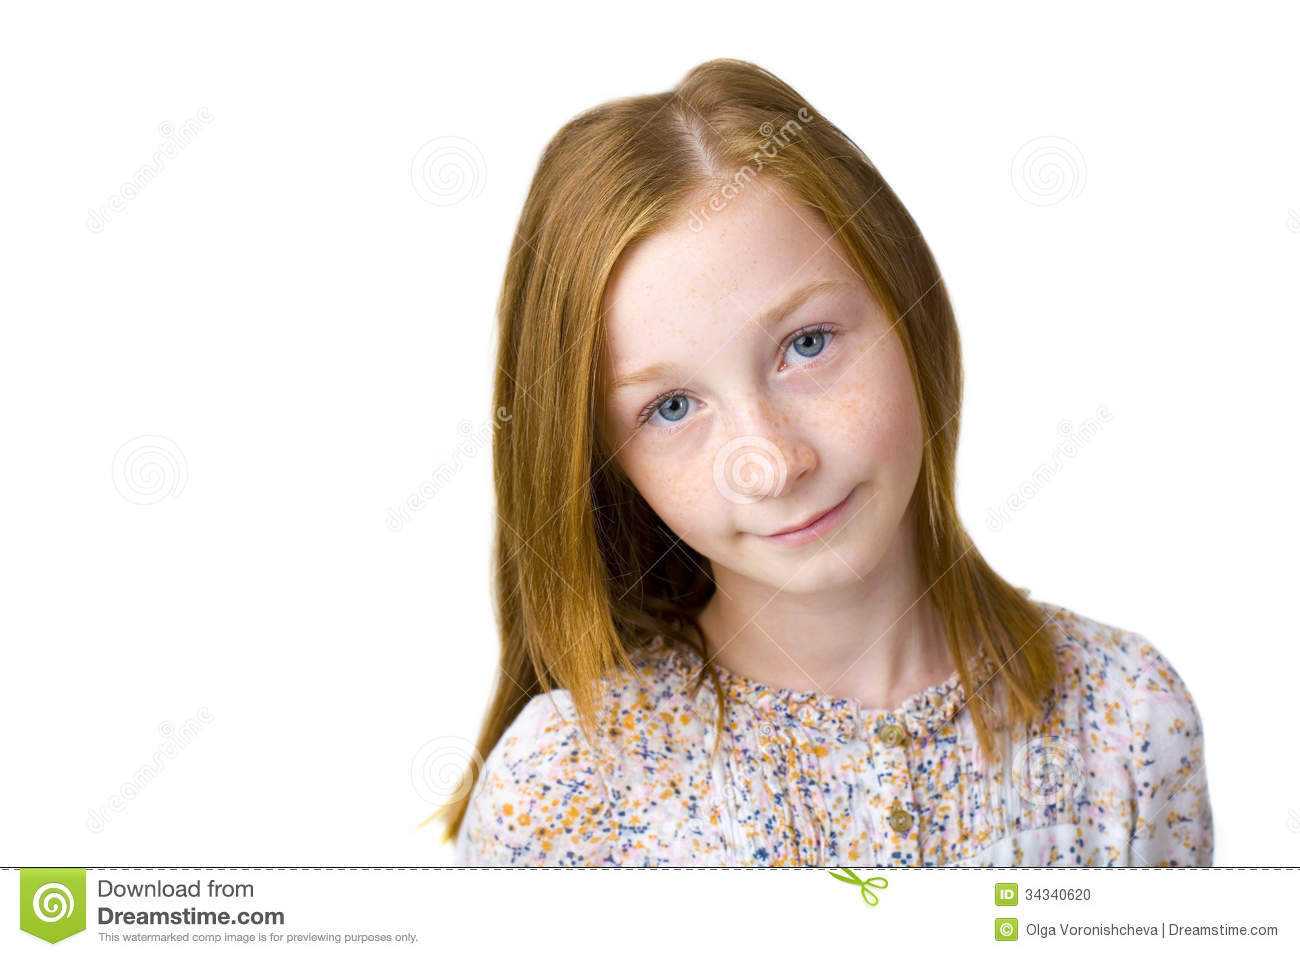 dating for eleven year olds Tweens (age 10-12 years) today's precocious preteens often shock parents when they begin to act like teenagers preteens: positive parenting your 10-12 year old.